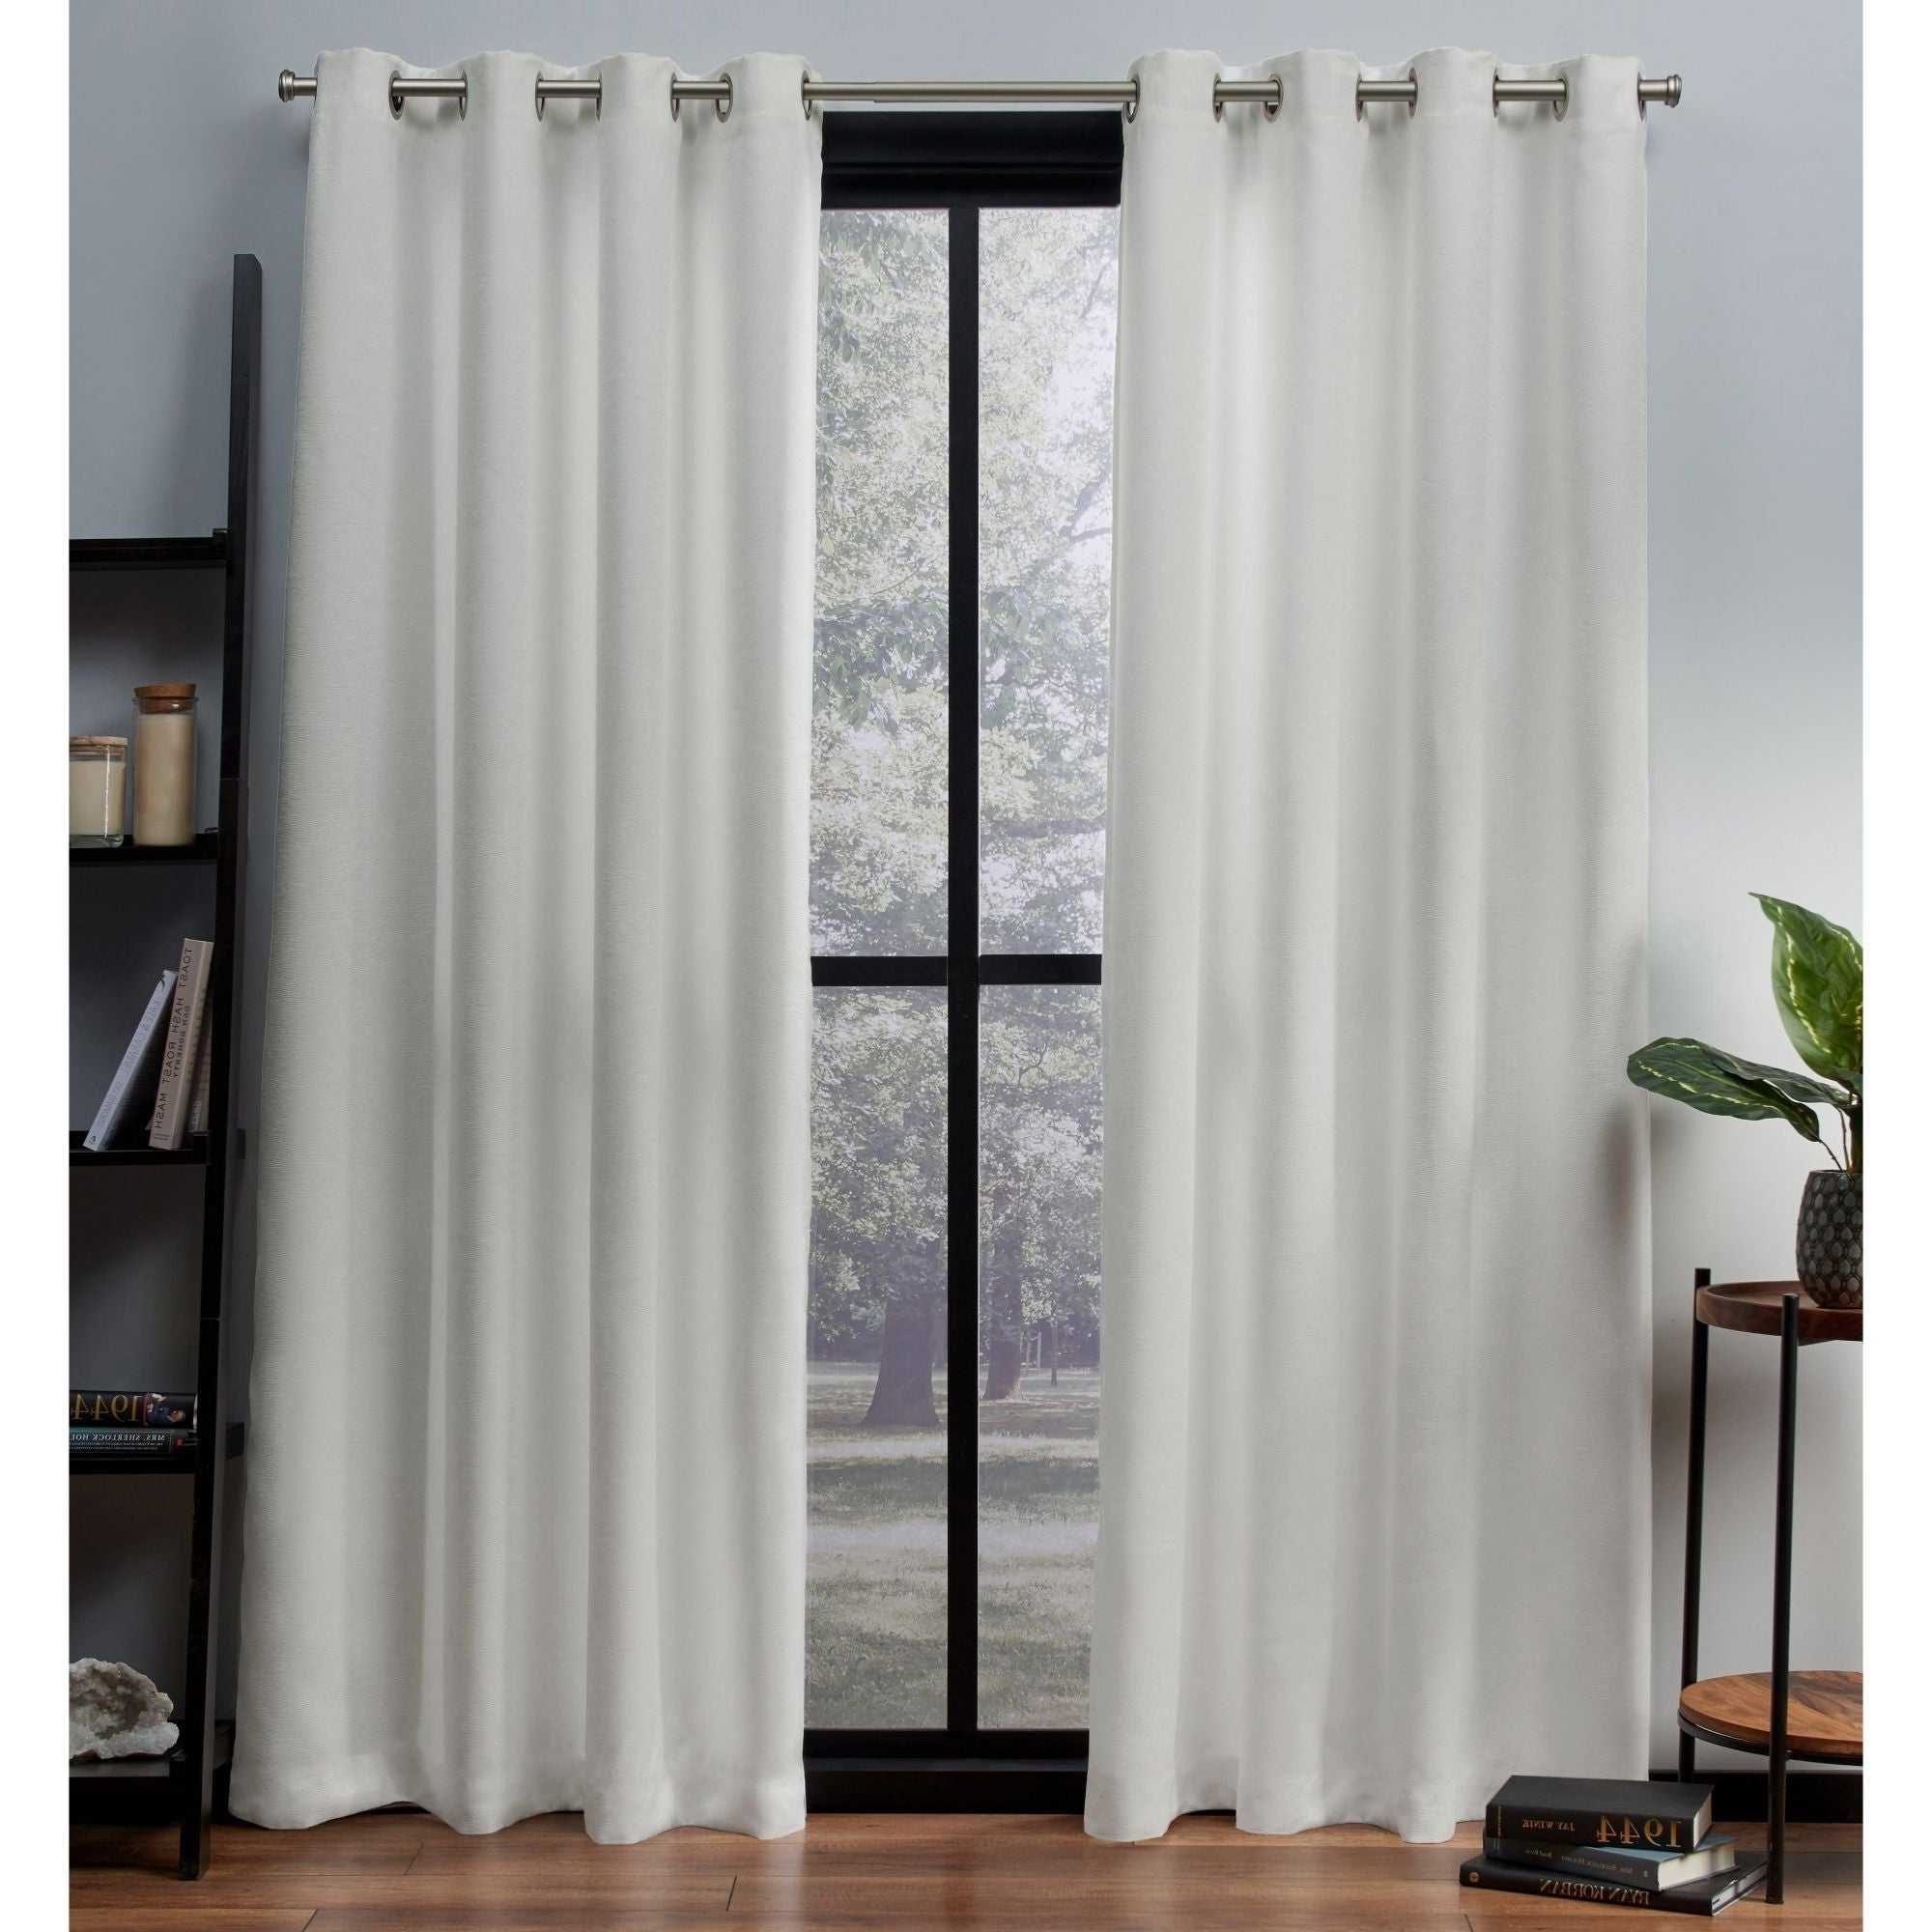 Newest Ati Home Oxford Sateen Woven Blackout Grommet Top Curtain Panel Pair In Oxford Sateen Woven Blackout Grommet Top Curtain Panel Pairs (View 9 of 20)